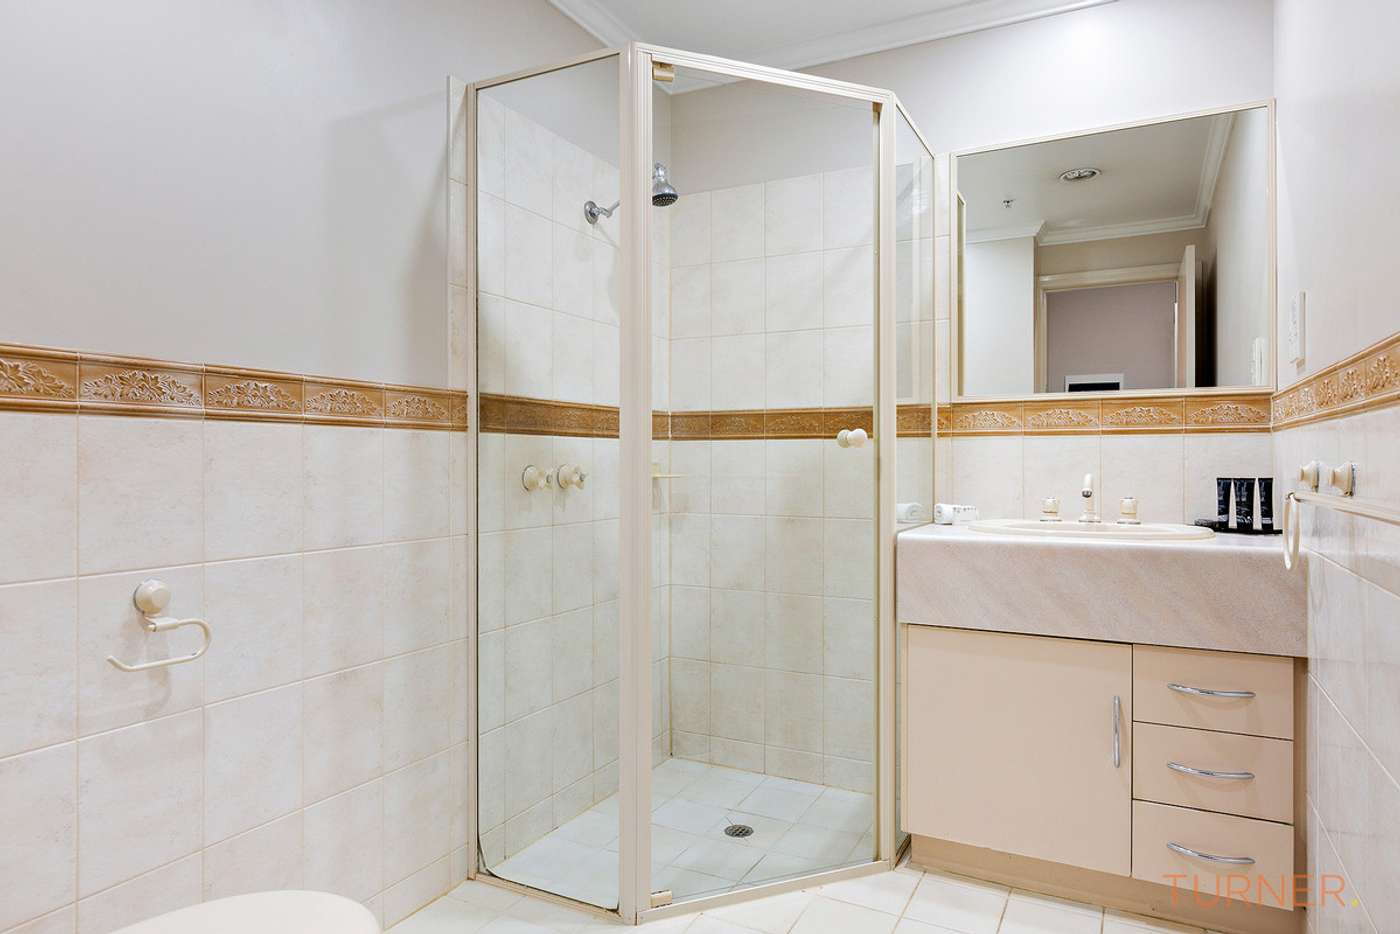 Fifth view of Homely apartment listing, 106/88 Frome Street, Adelaide SA 5000